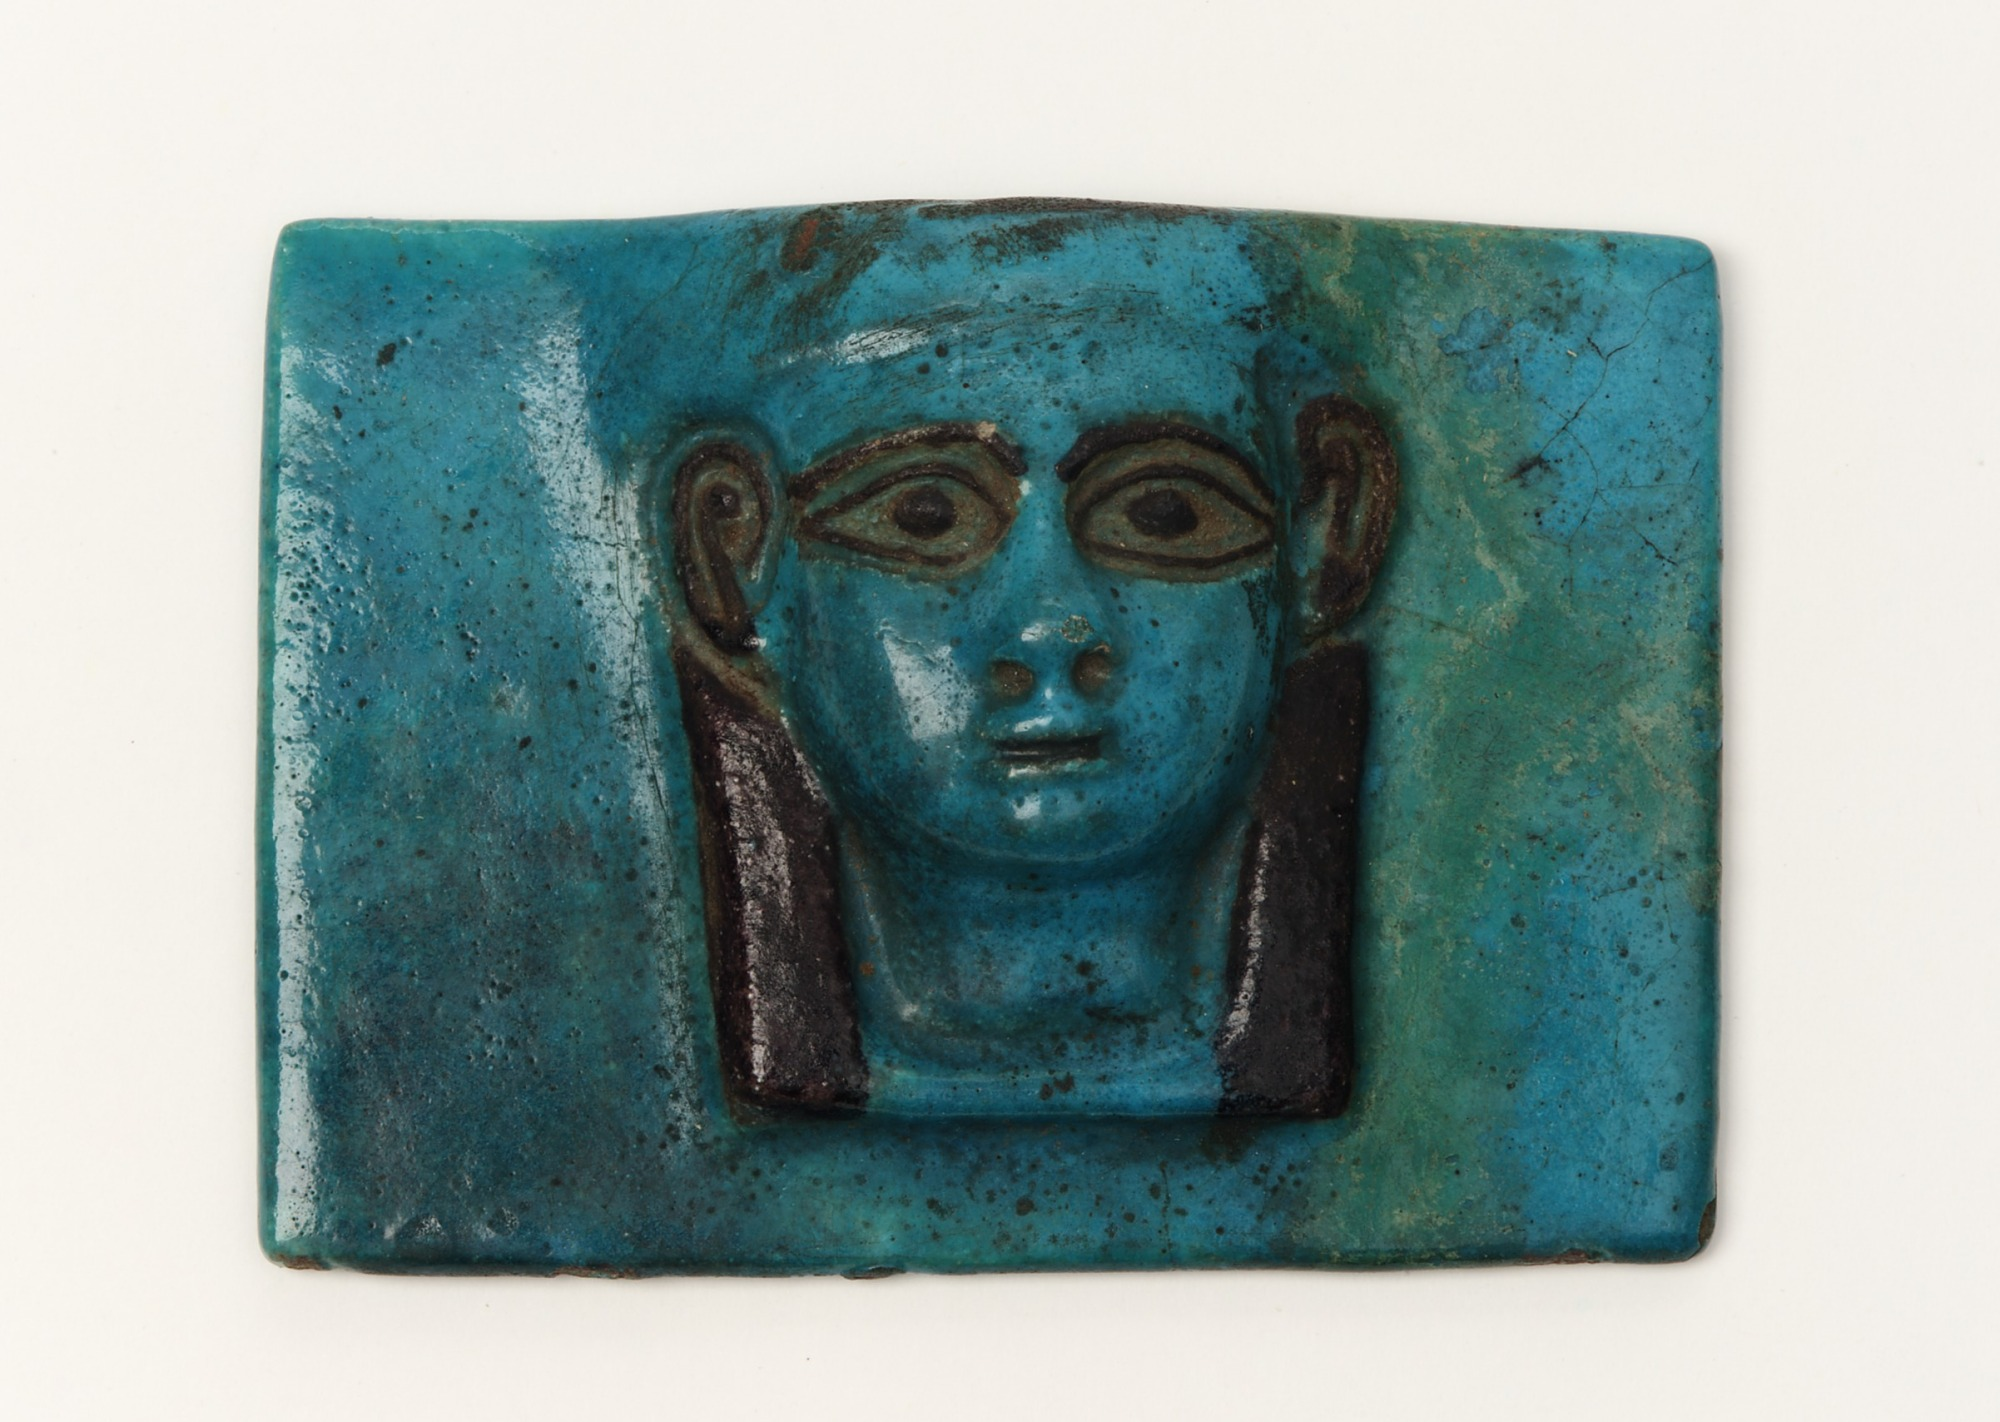 : Thin oblong tile, with a female head in relief